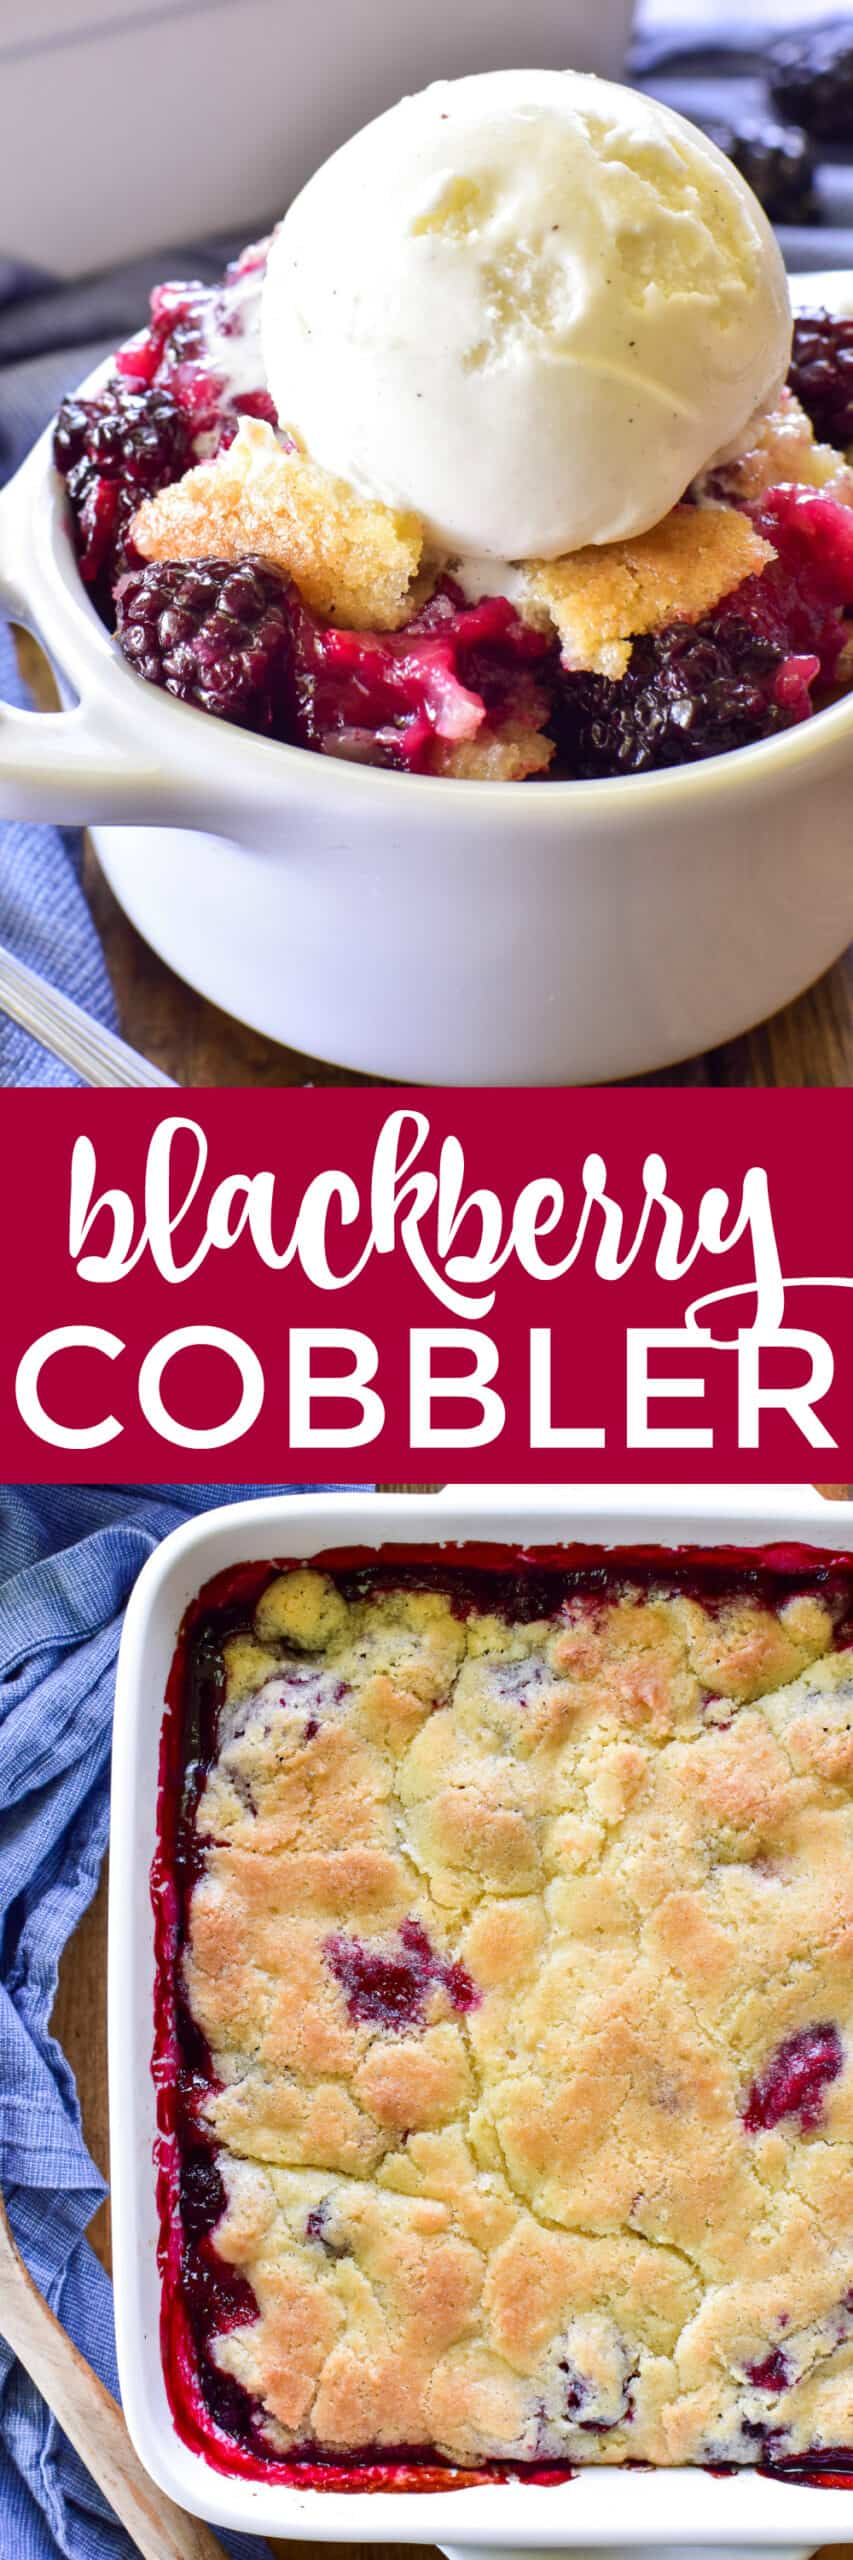 Collage image of Blackberry Cobbler in pan and in a dish with ice cream